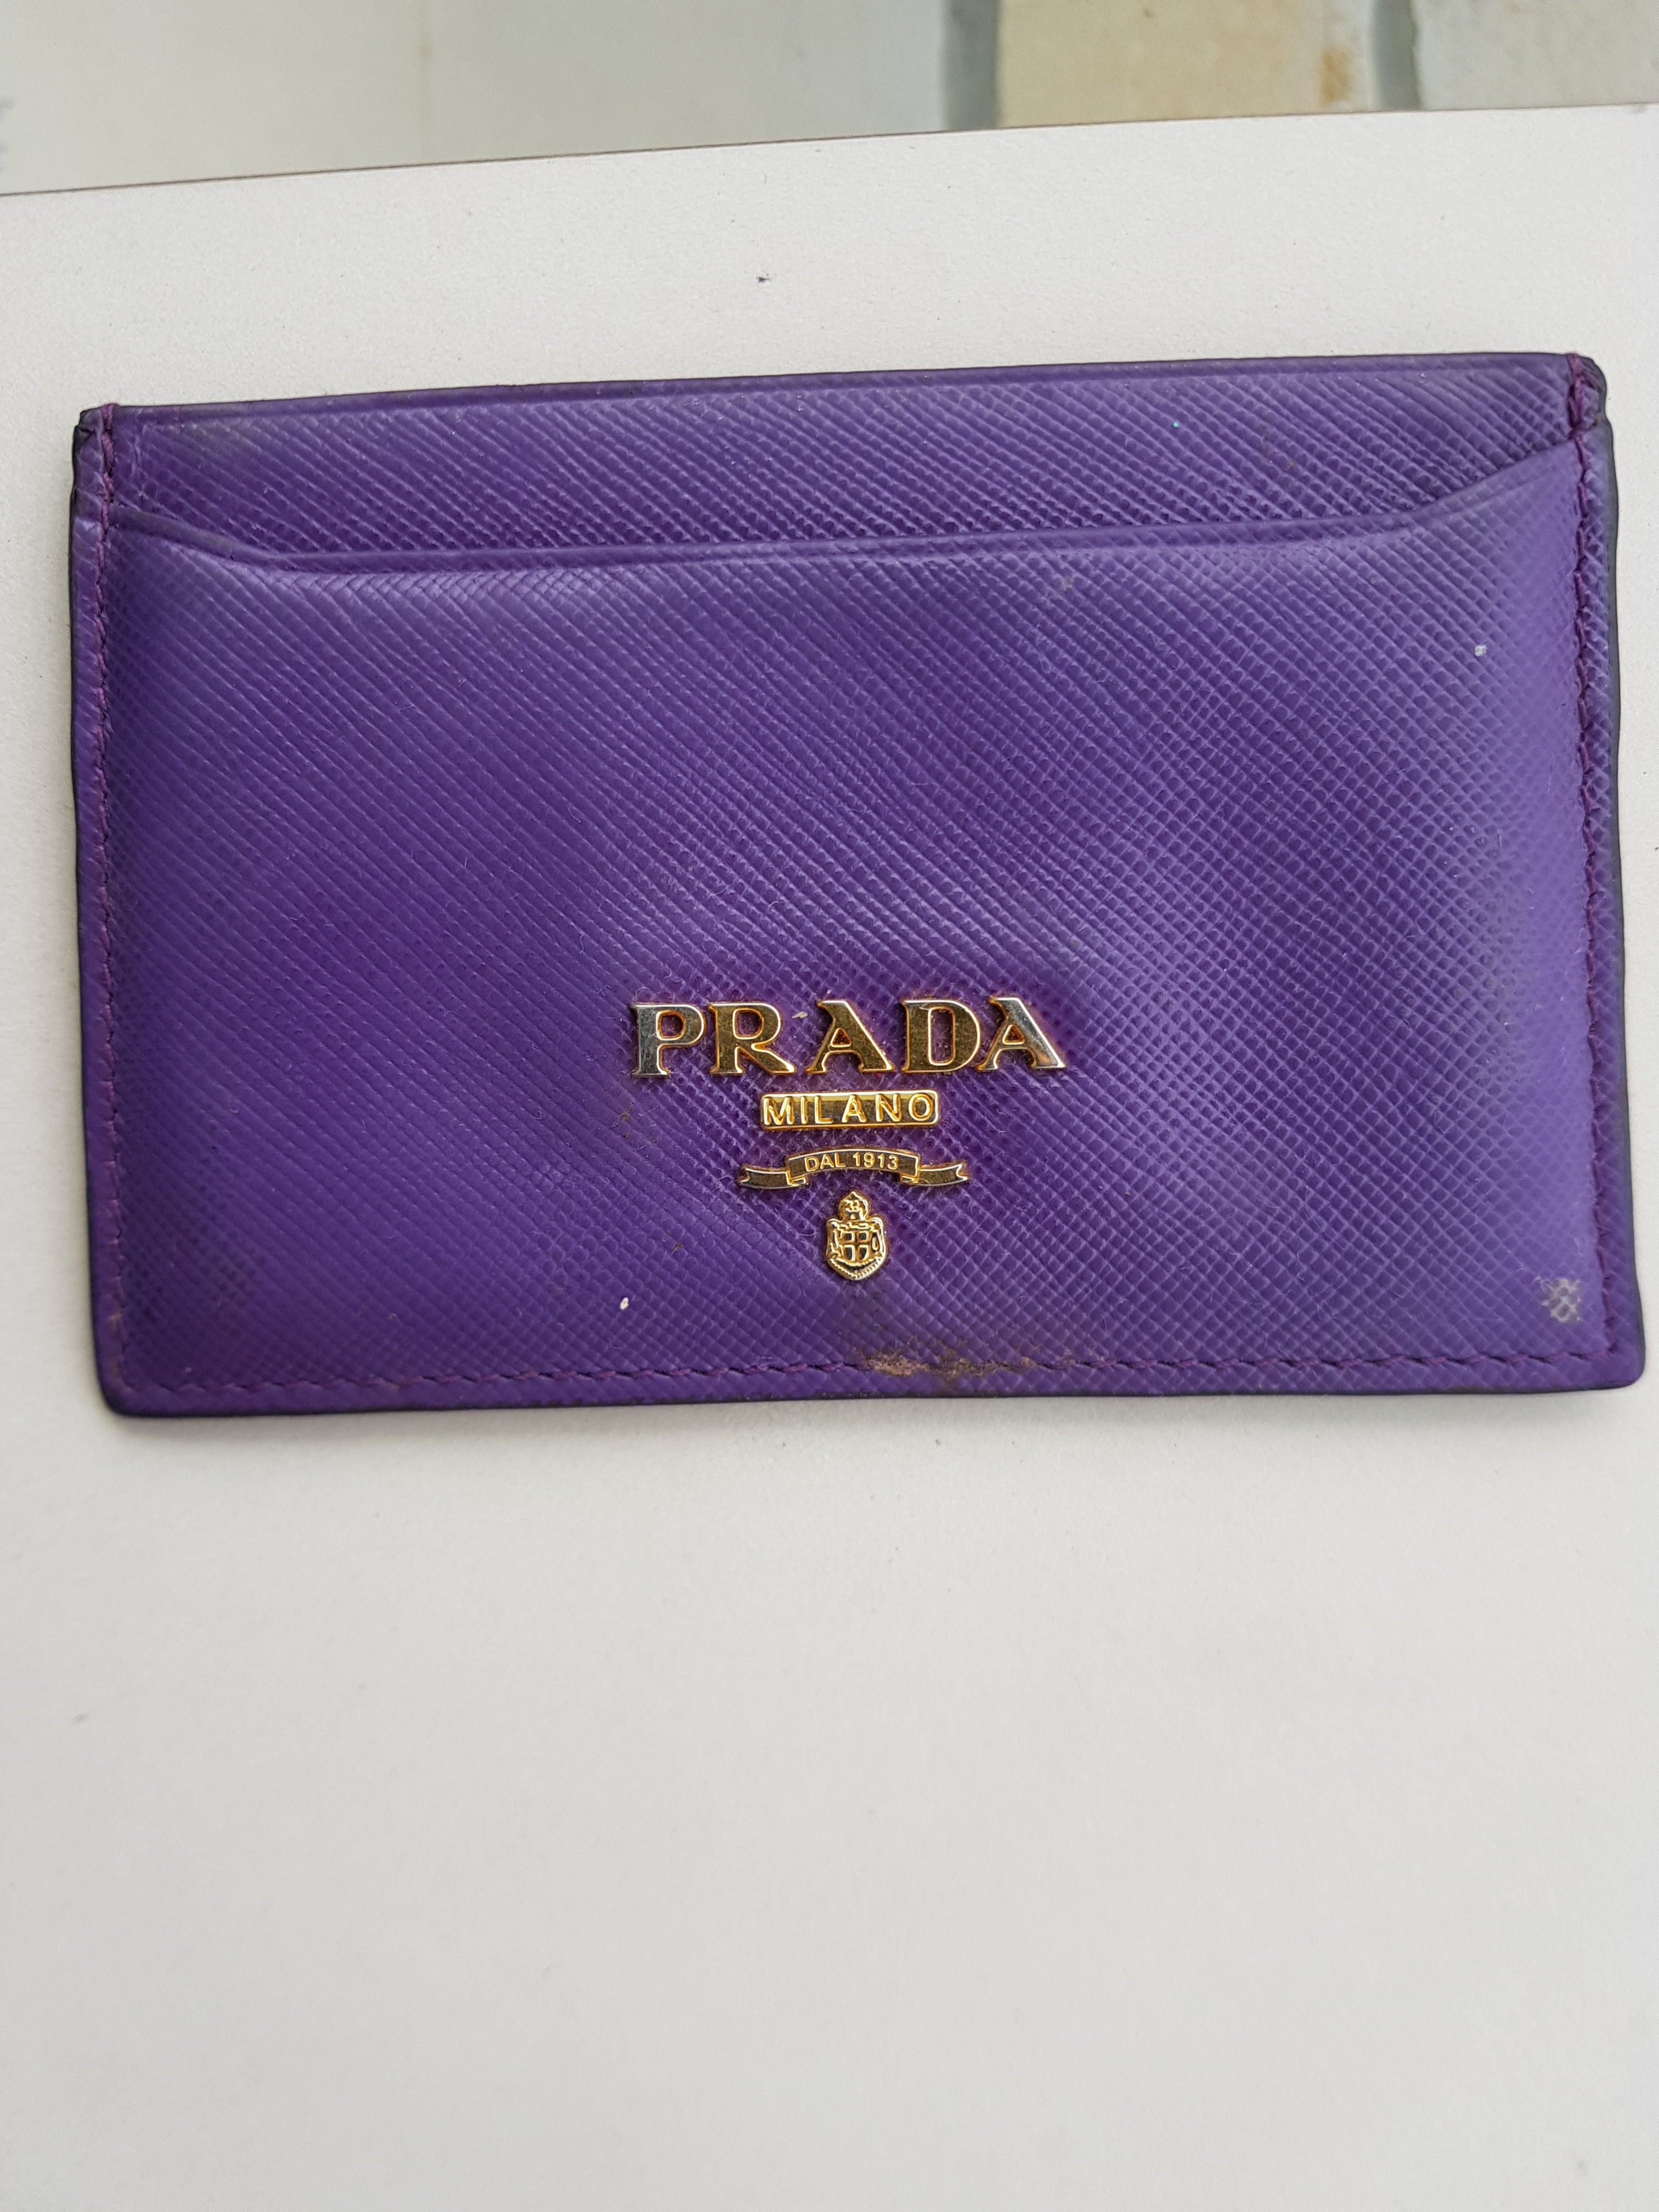 086a7ec65e97 ... authentic prada credit cardholder card holder wallet purple gold  saffiano luxury bags wallets wallets on carousell